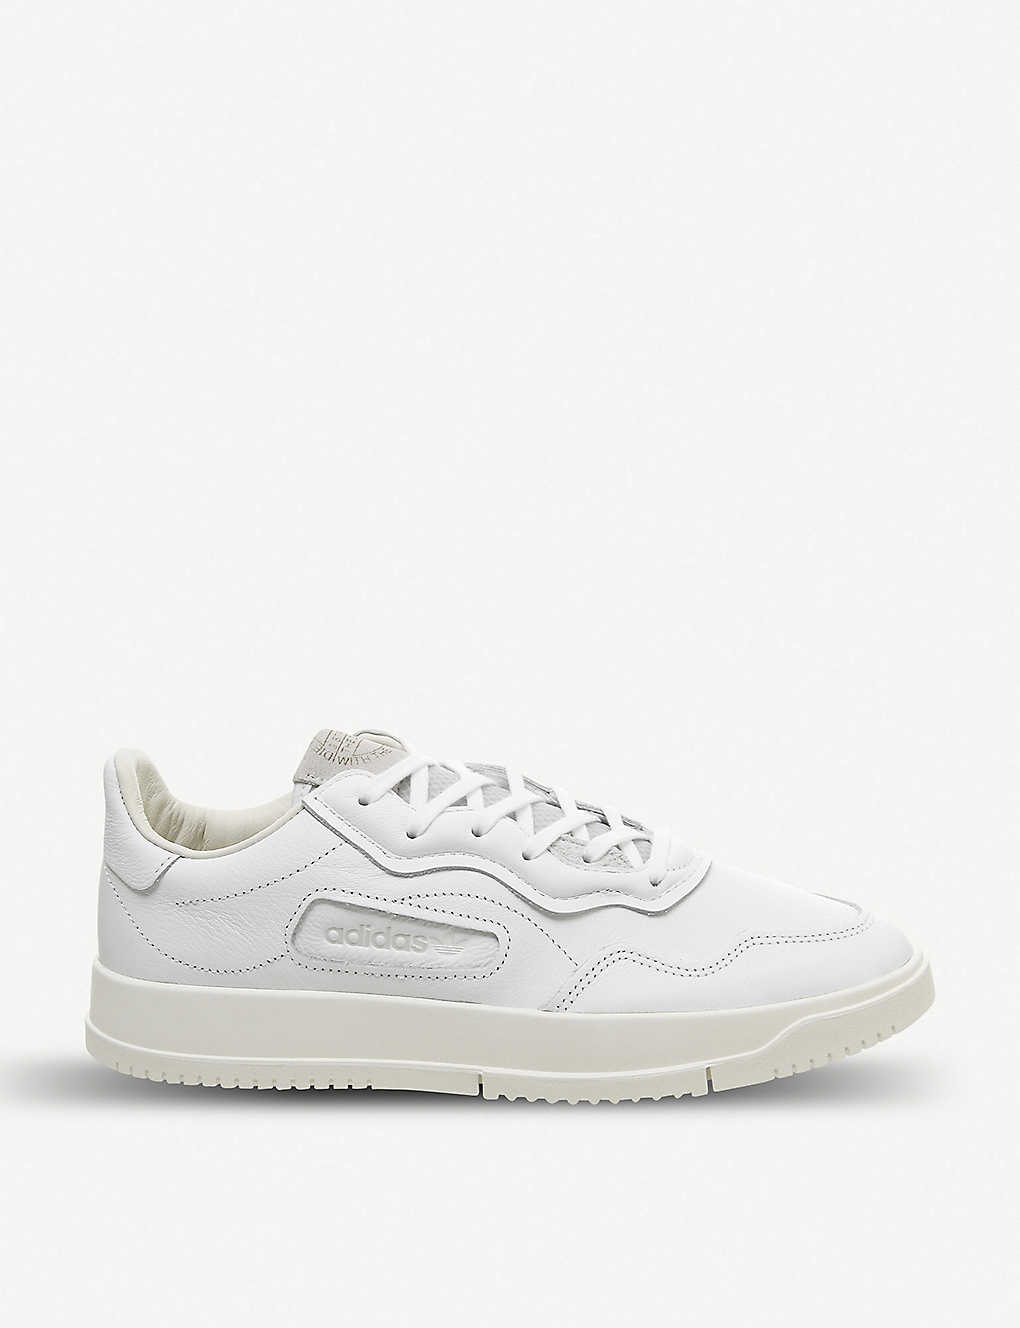 outlet store 0914a 689a4 ADIDAS SC Premiere leather trainers